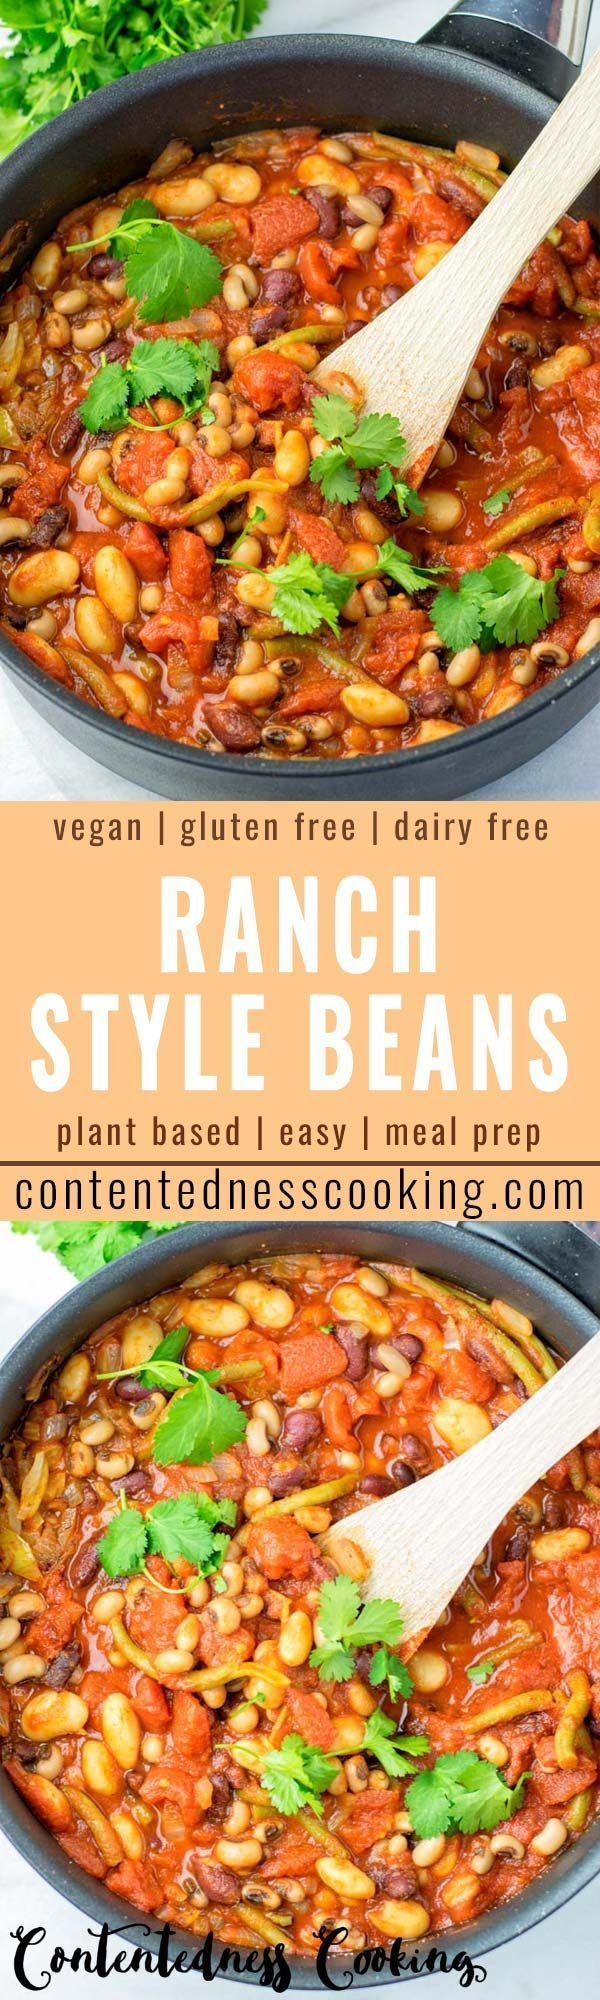 Style Beans These homemade Ranch Style Beans are are made with four kinds of beans to create the perfect texture. Super easy to make in one pot, crockpot ready, and seriously so easy plus delicious! Naturally vegan, gluten free once you've tried it, you want coming back for in no time.The...